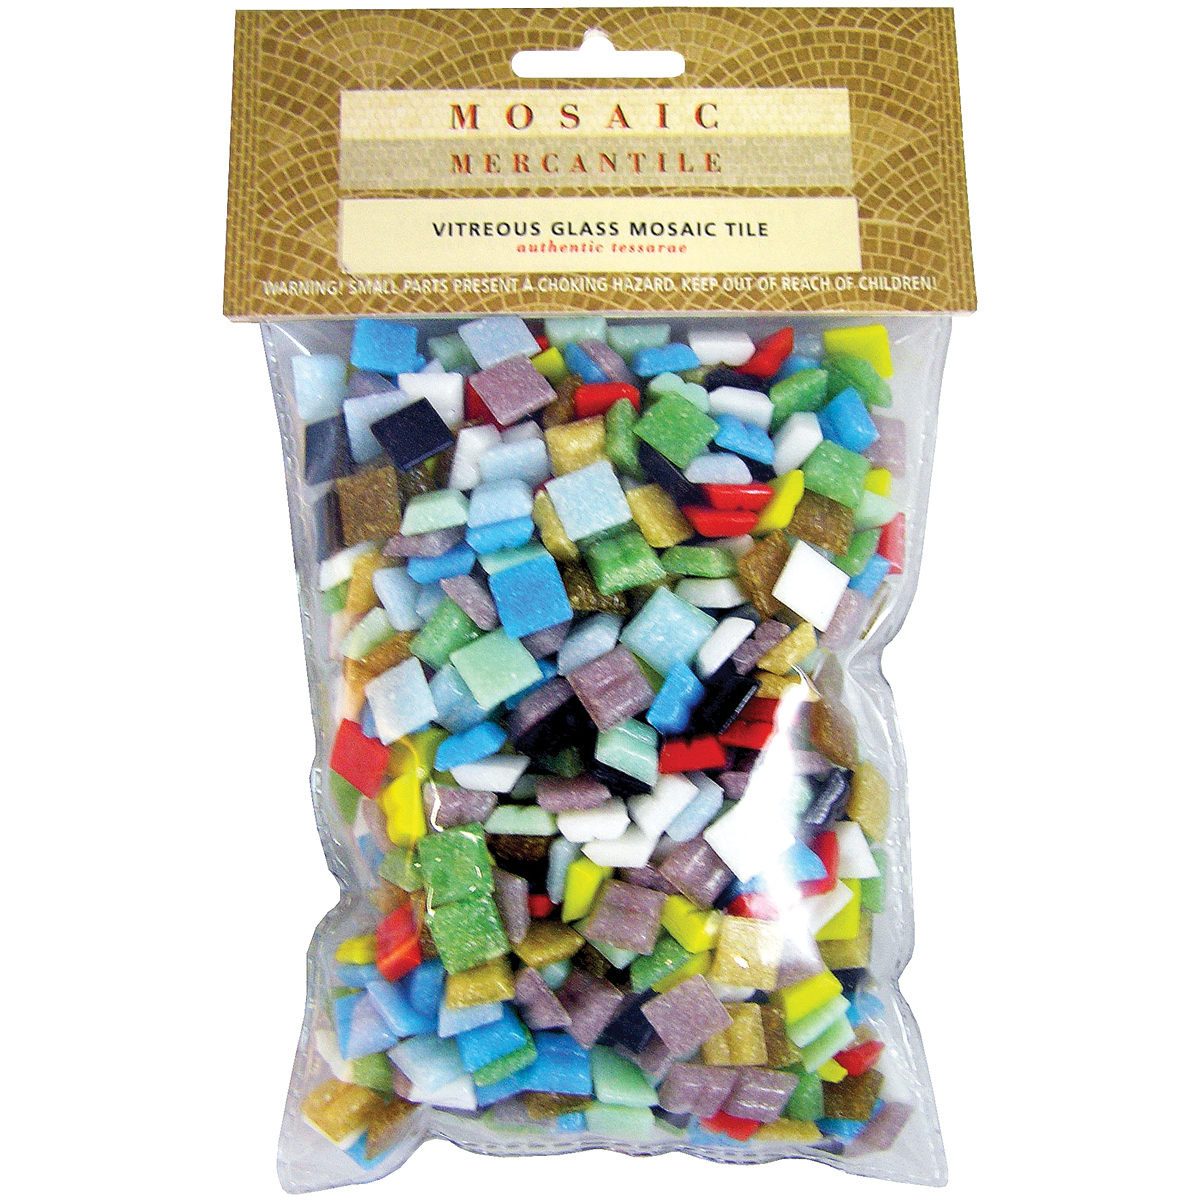 Vitreous Glass Mosaic Tiles 1lb-Assorted